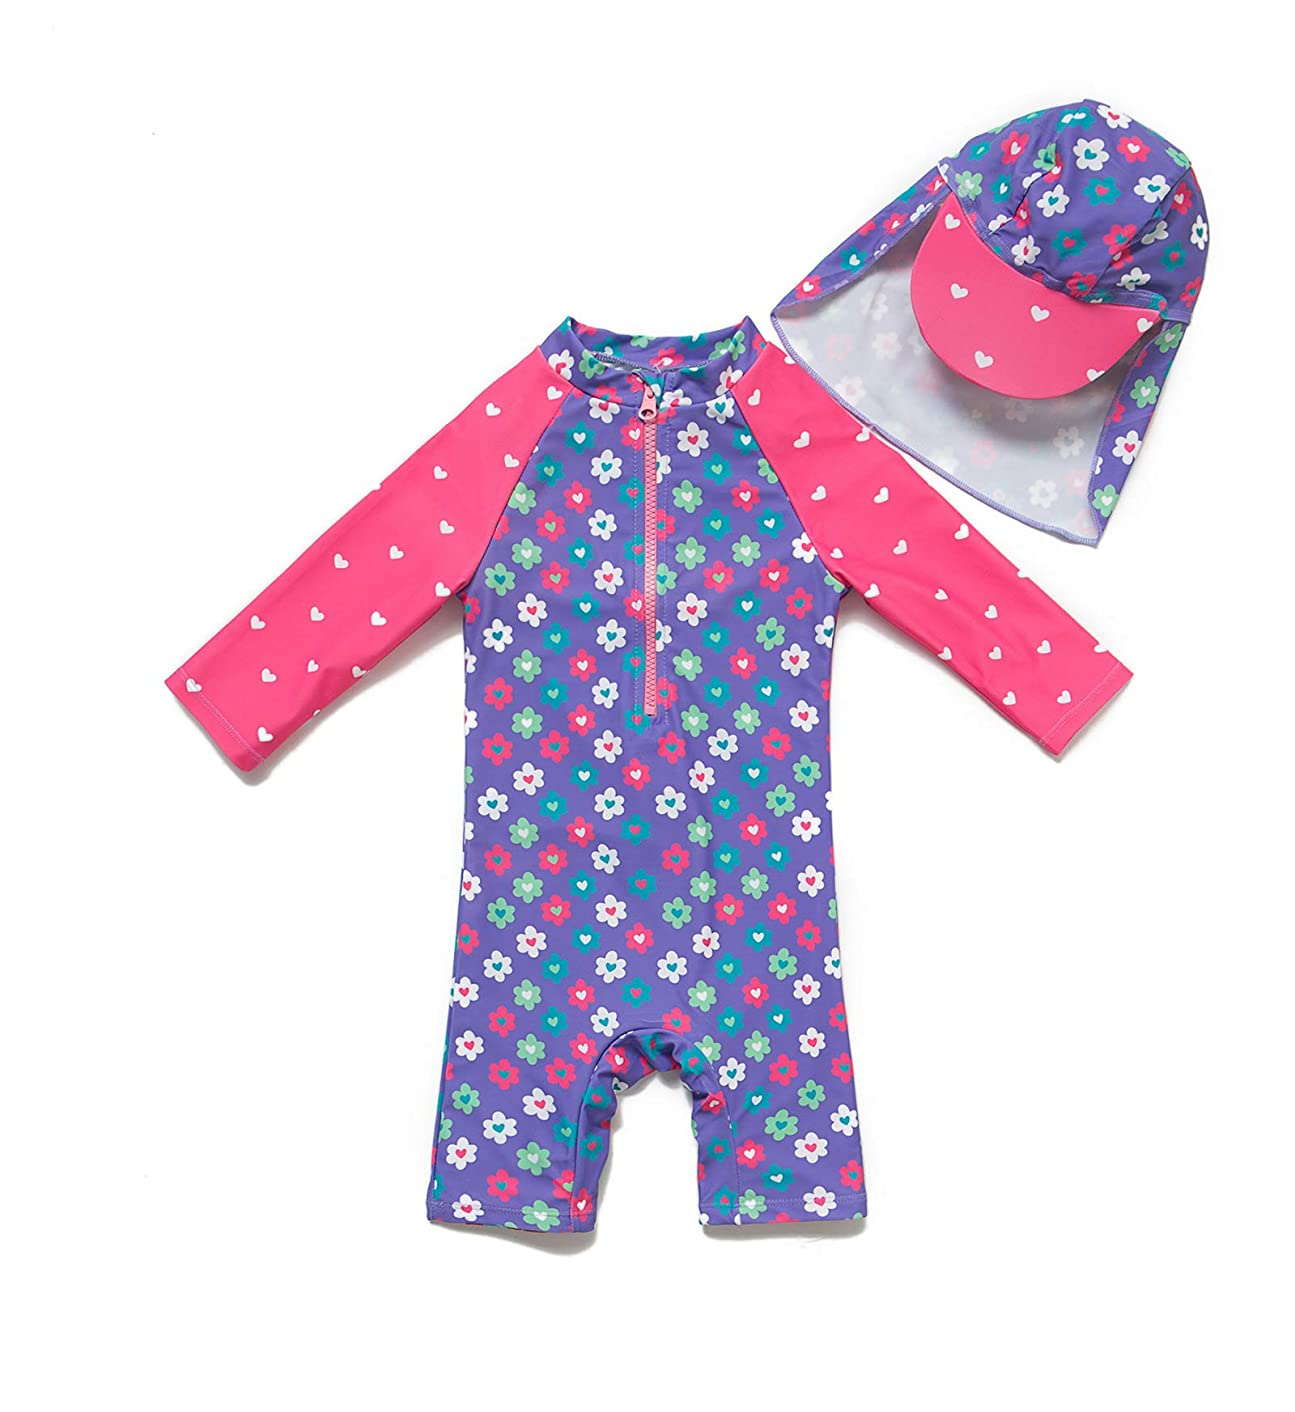 Baby/Toddler Girl One Piece Swimsuit with UPF 50+ Sun Protection